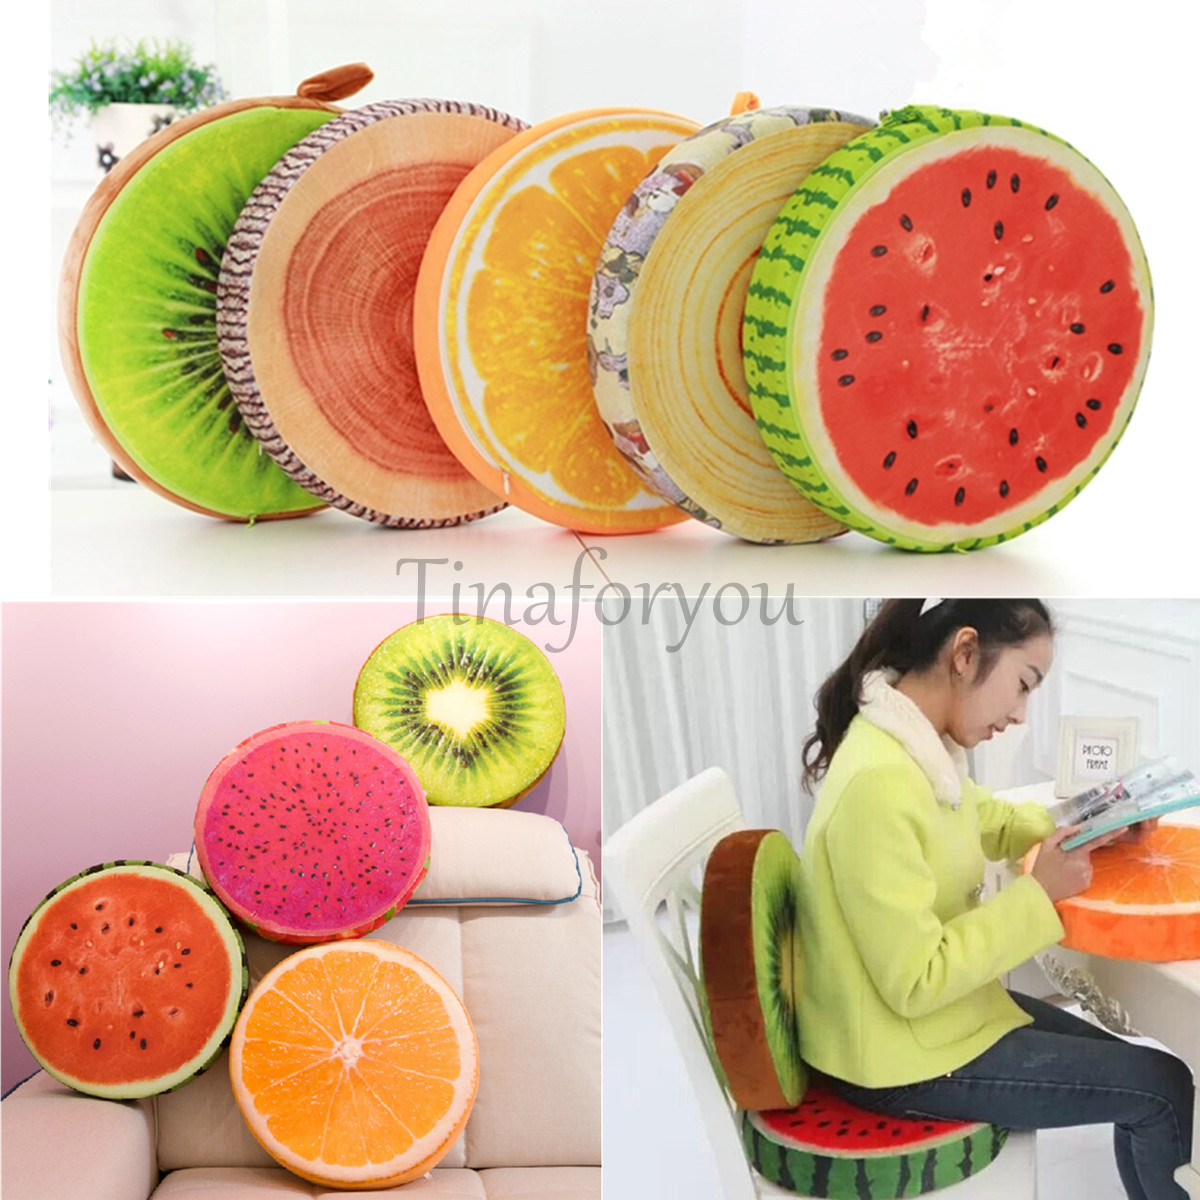 3D Fruit PP Cotton Office Chair Back Cushion Sofa Throw  : F463032356CA369B9E5ED2939C9333D223C6F13383D2469BC7CED2B823C7463663CCC7CAE5566616CCA013 from ebay.ca size 1200 x 1200 jpeg 334kB